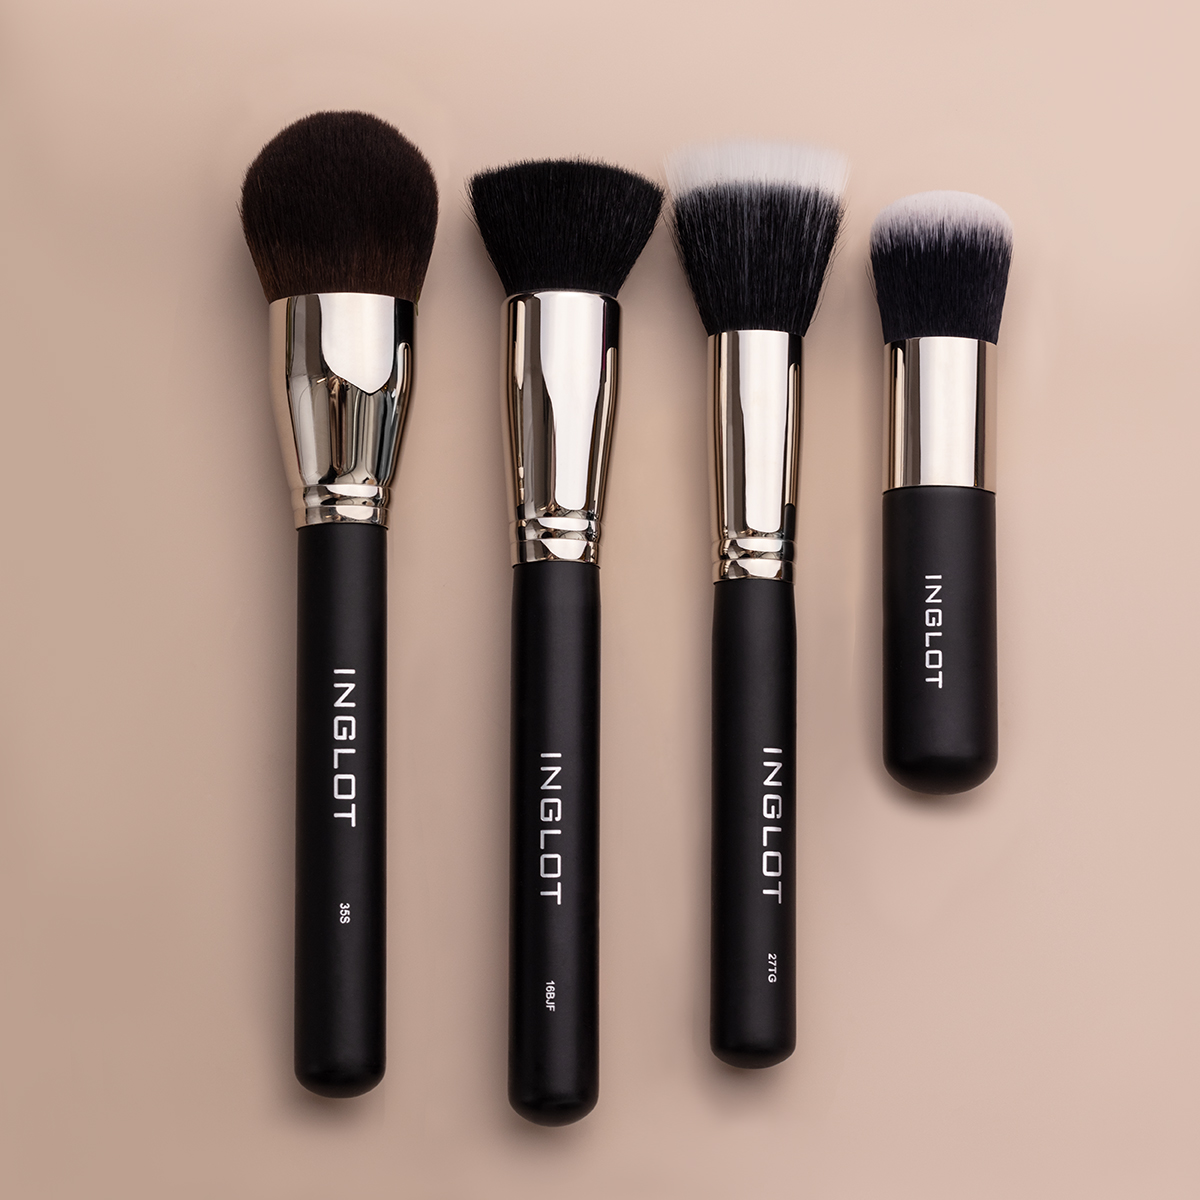 The best powder brush - which to choose?